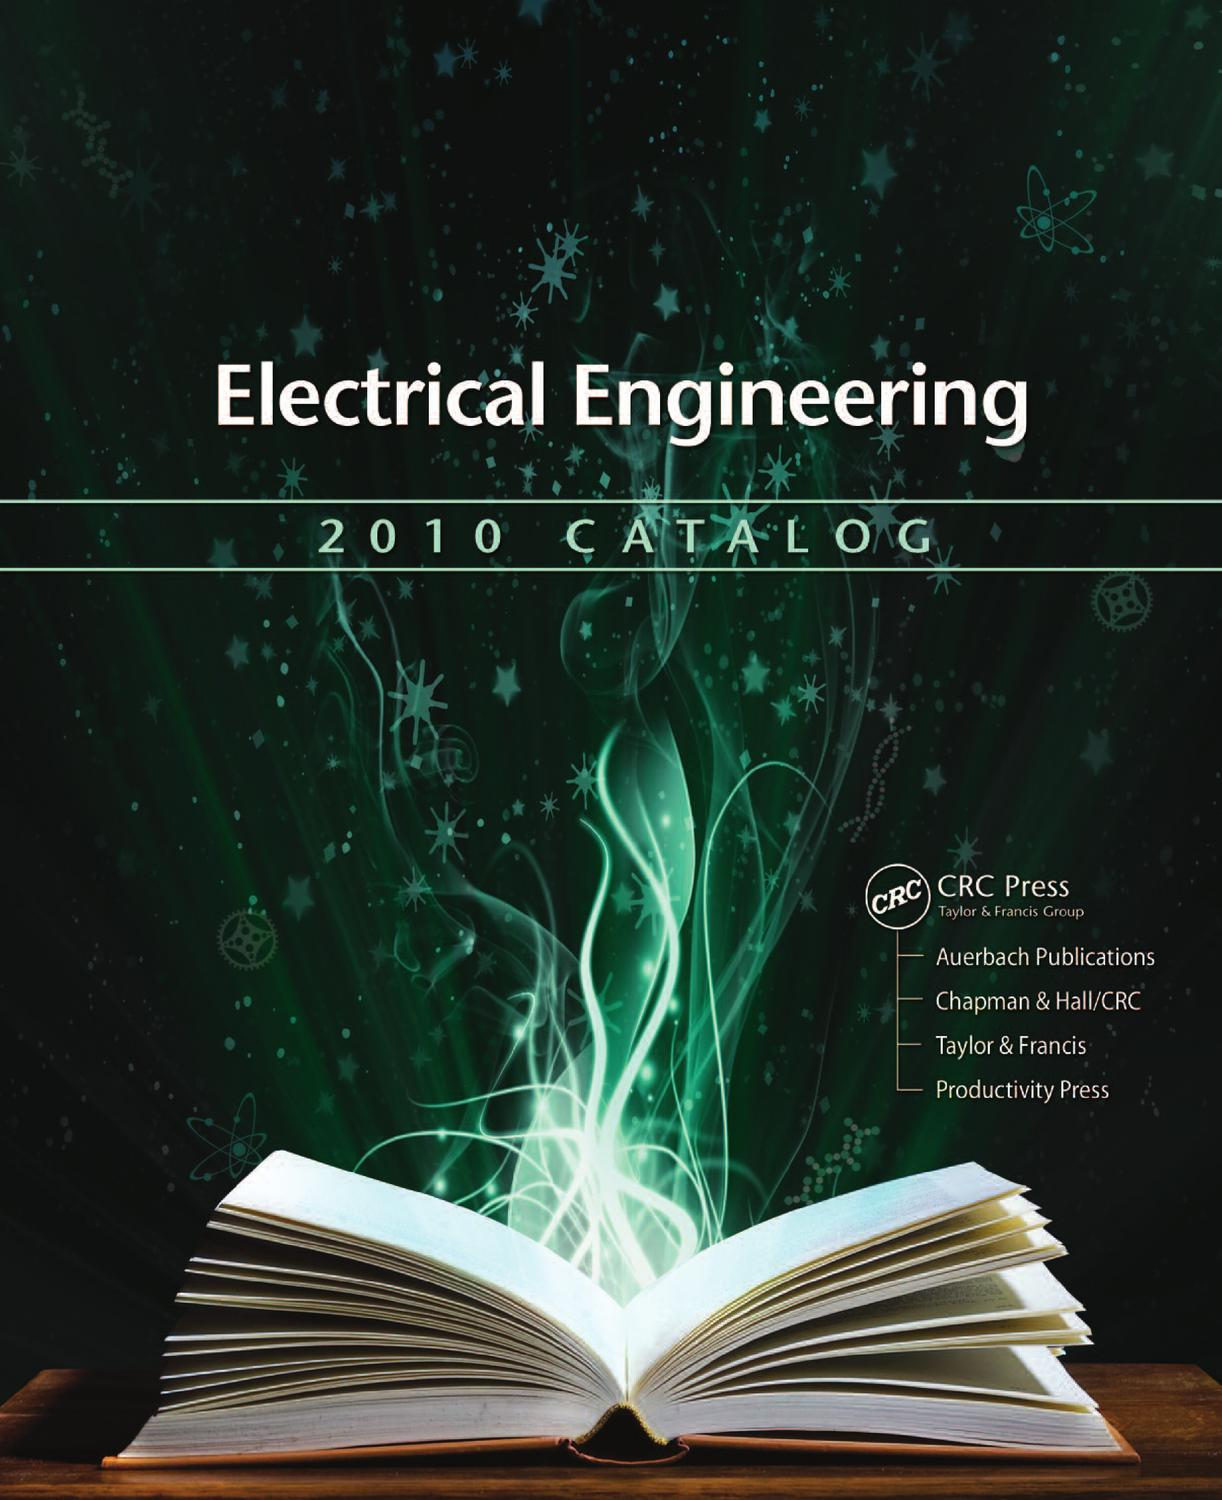 Electrical Engineering By Crc Press Issuu Ltspice Iv Free Electronic Circuit Simulator Mechatronics Fly